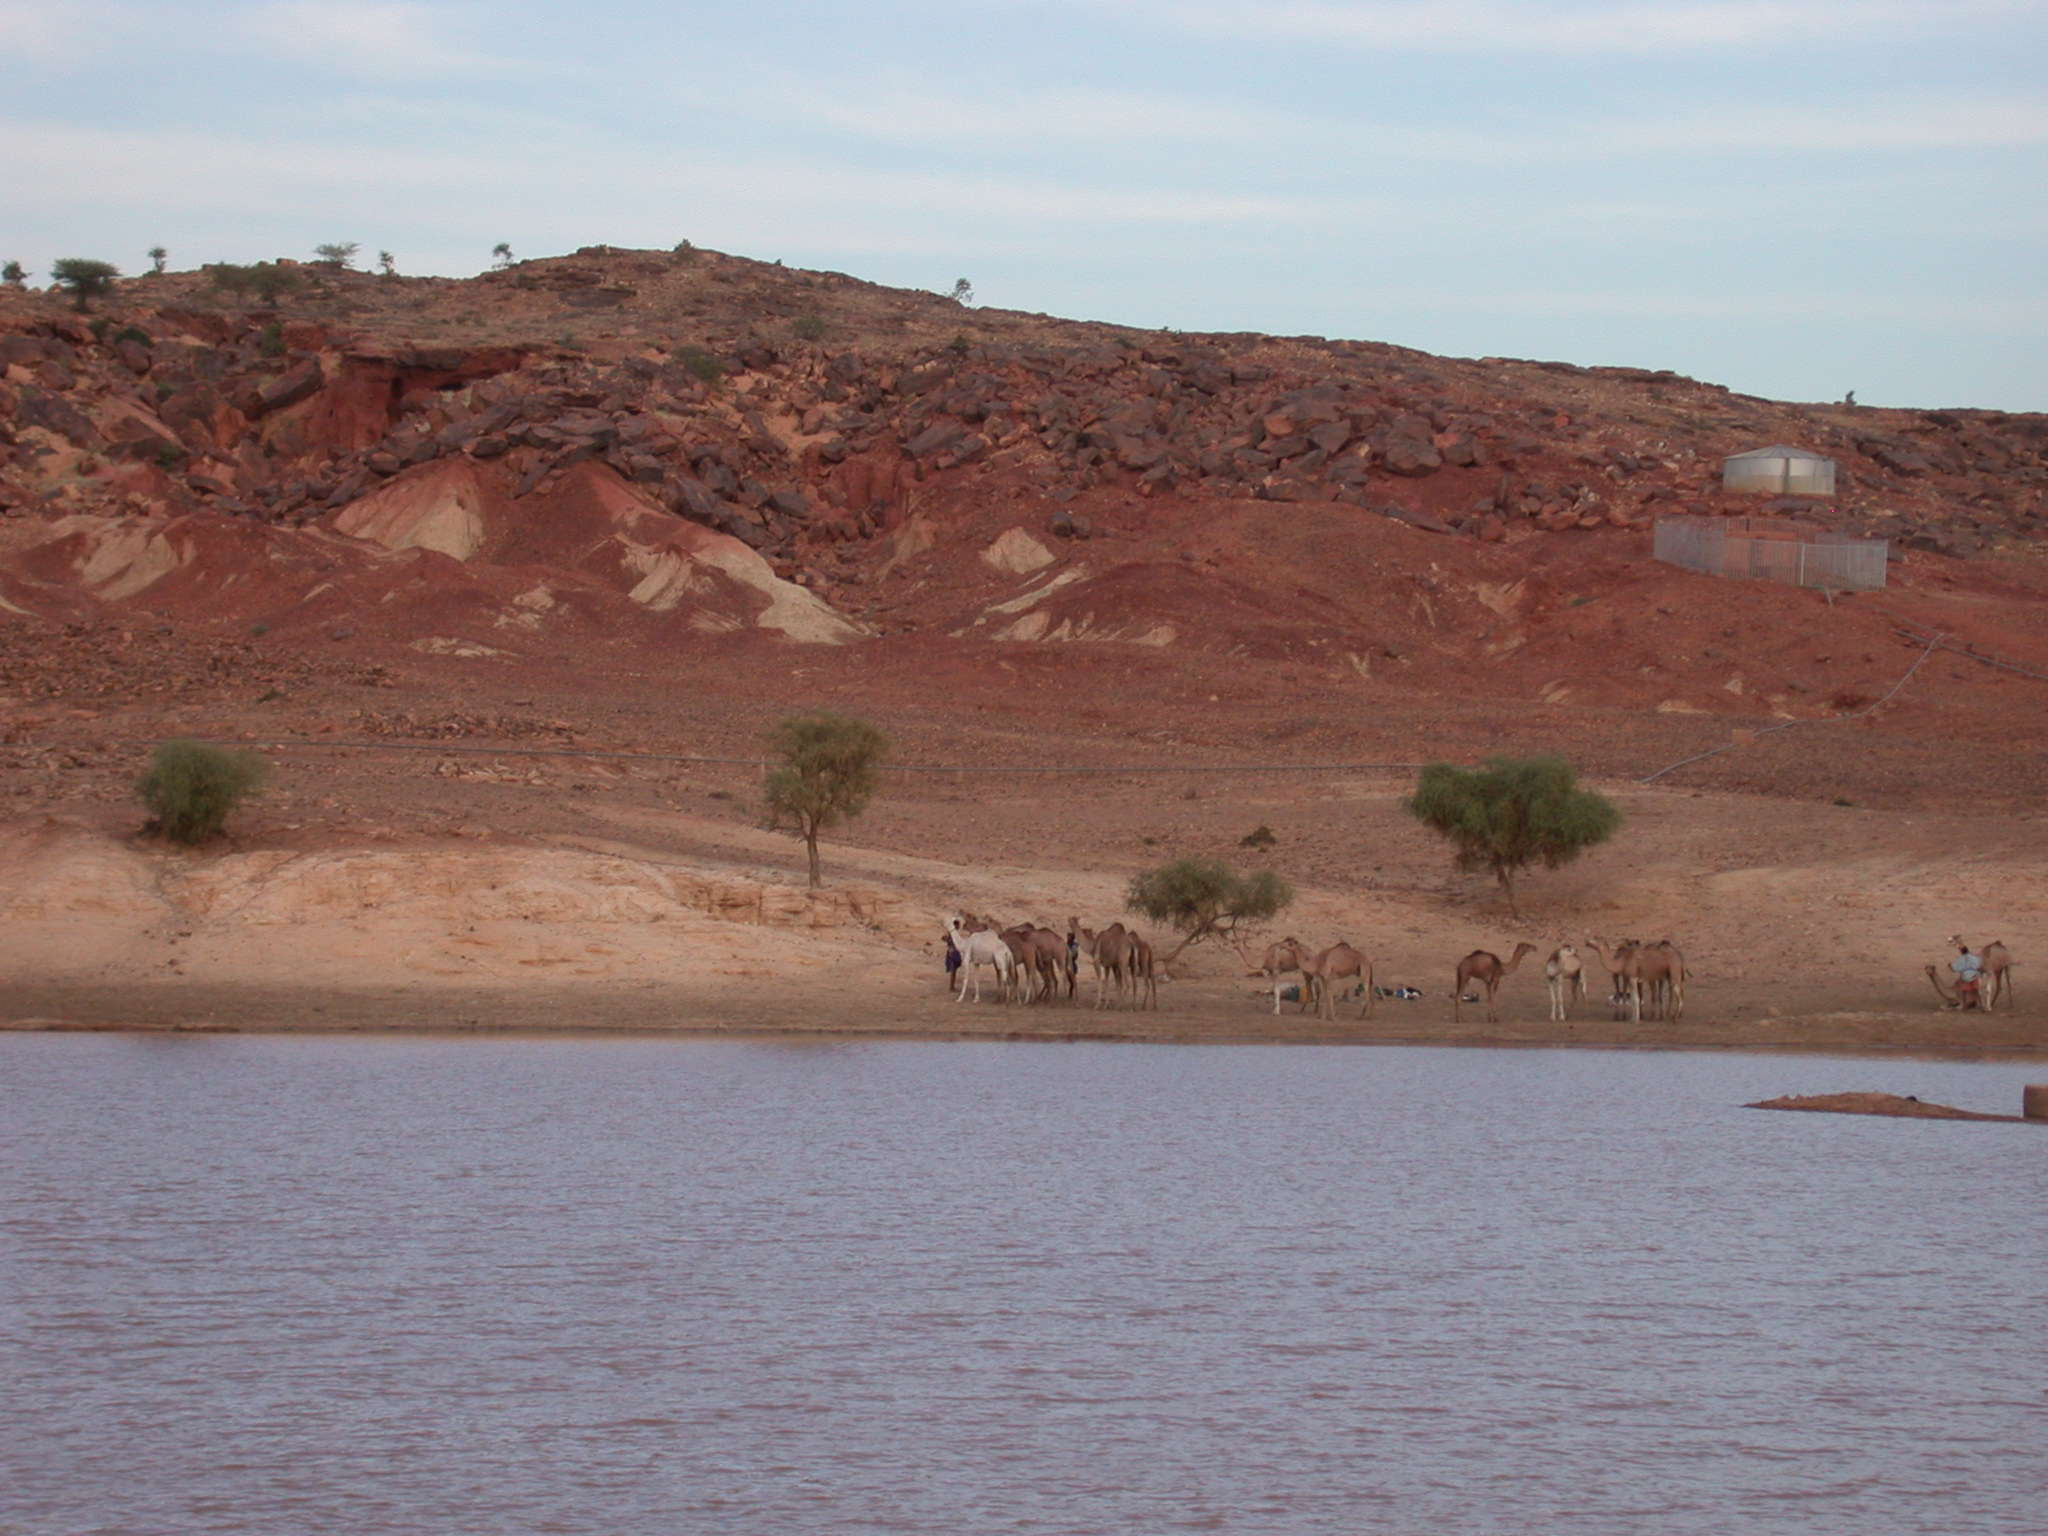 Camels at Reservoir, Oualata, Mauritania